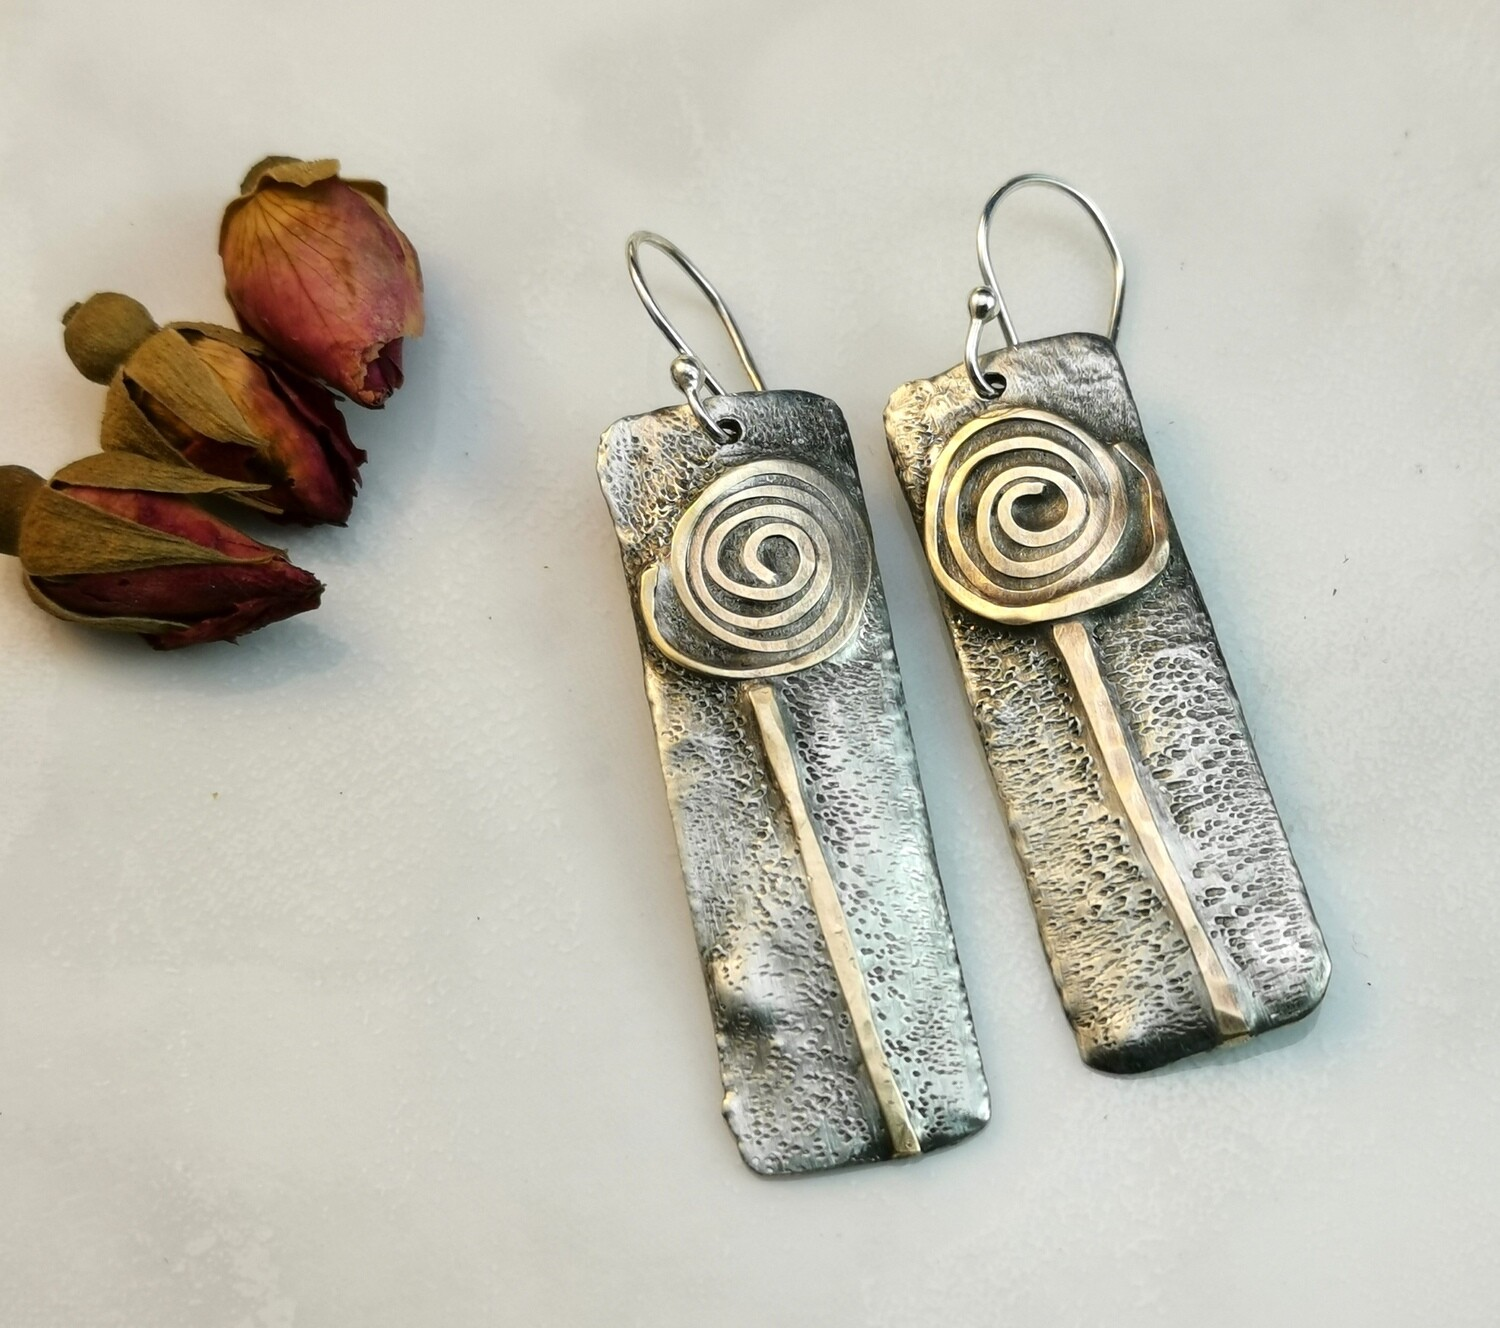 IN BLOOM Flowers, Gifts for Her, Rectangle Earrings, Rectangle Jewelry, Mixed Metal Jewelry, Mixed Metal Earrings, Brass Jewelry, Textured Solder Earrings